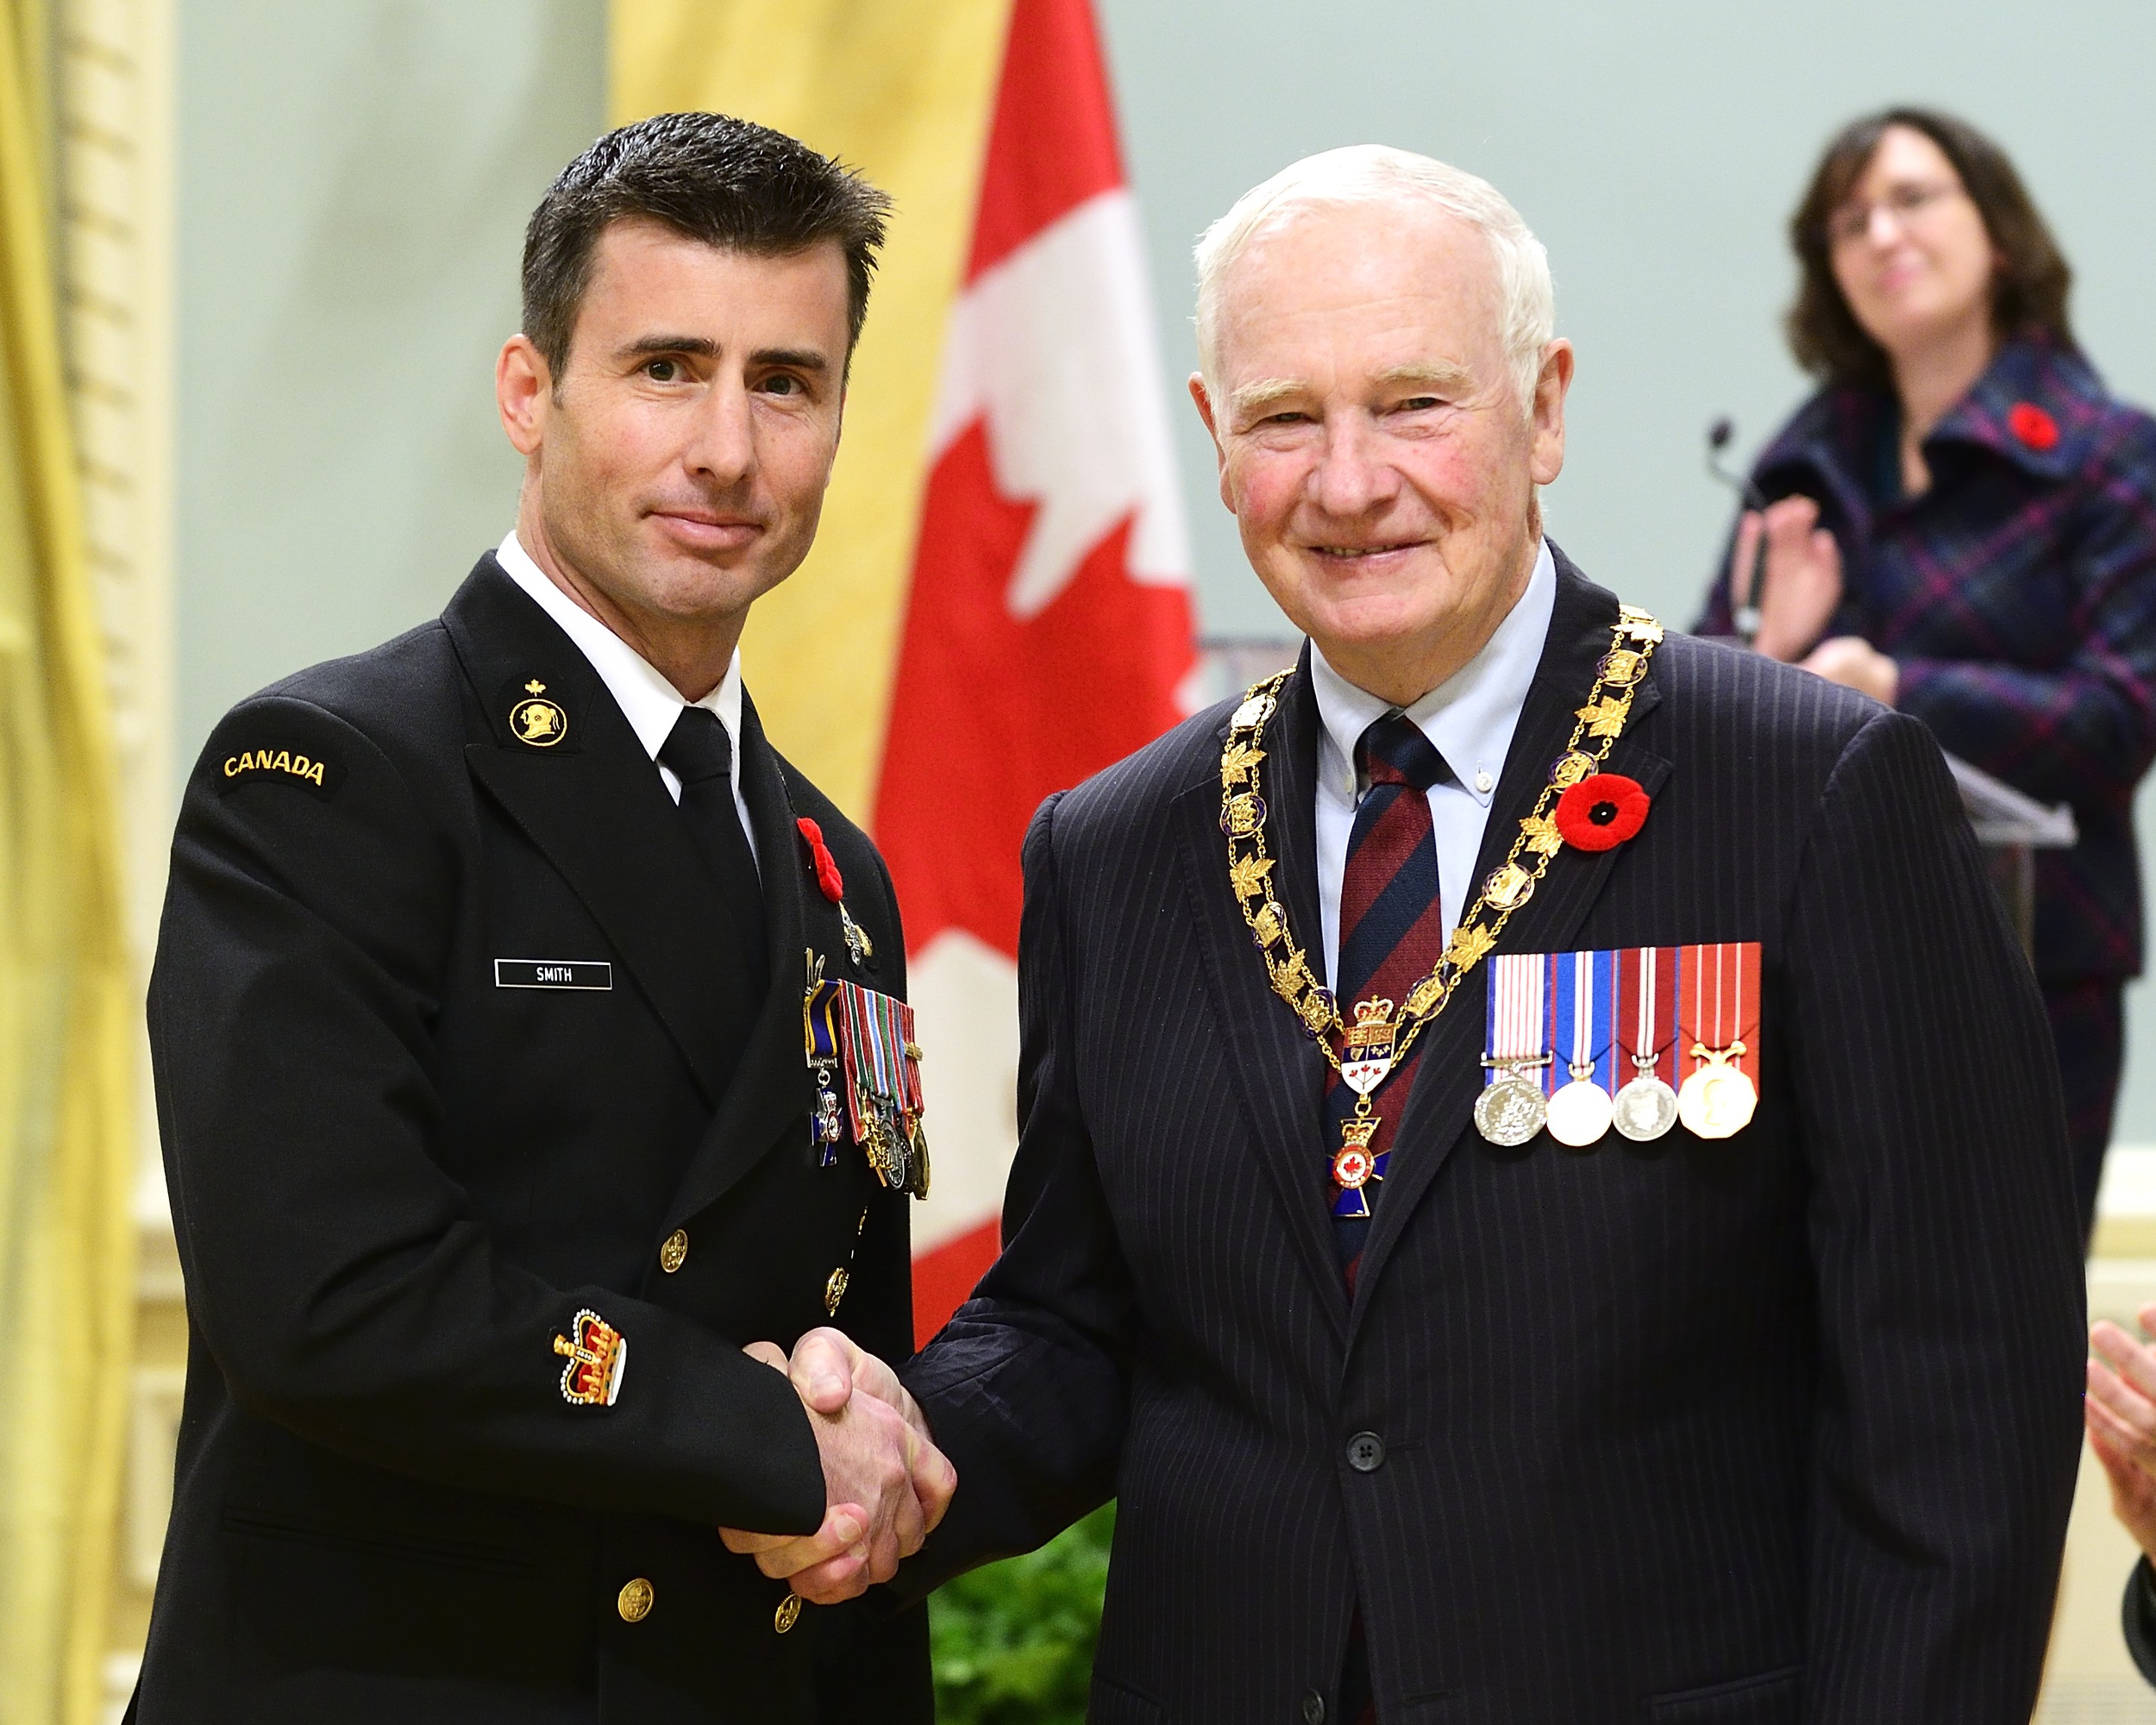 """Member of the Order of Military Merit, here with the Governor General of Canada, the Honourable David Johnston. The Order is awarded to no more than 1/10th of 1 % of the Canadian Armed Forces each year. It is invested on behalf of the Queen as a culmination of a remarkable career of service to Canada.  """"To those who have been appointed and promoted to the Order, I commend you for your professional and dedicated service. Your membership in a society of merit recognizes the best qualities of military profession and makes you models that all others would do to emulate."""" Her Majesty Queen Elizabeth II."""